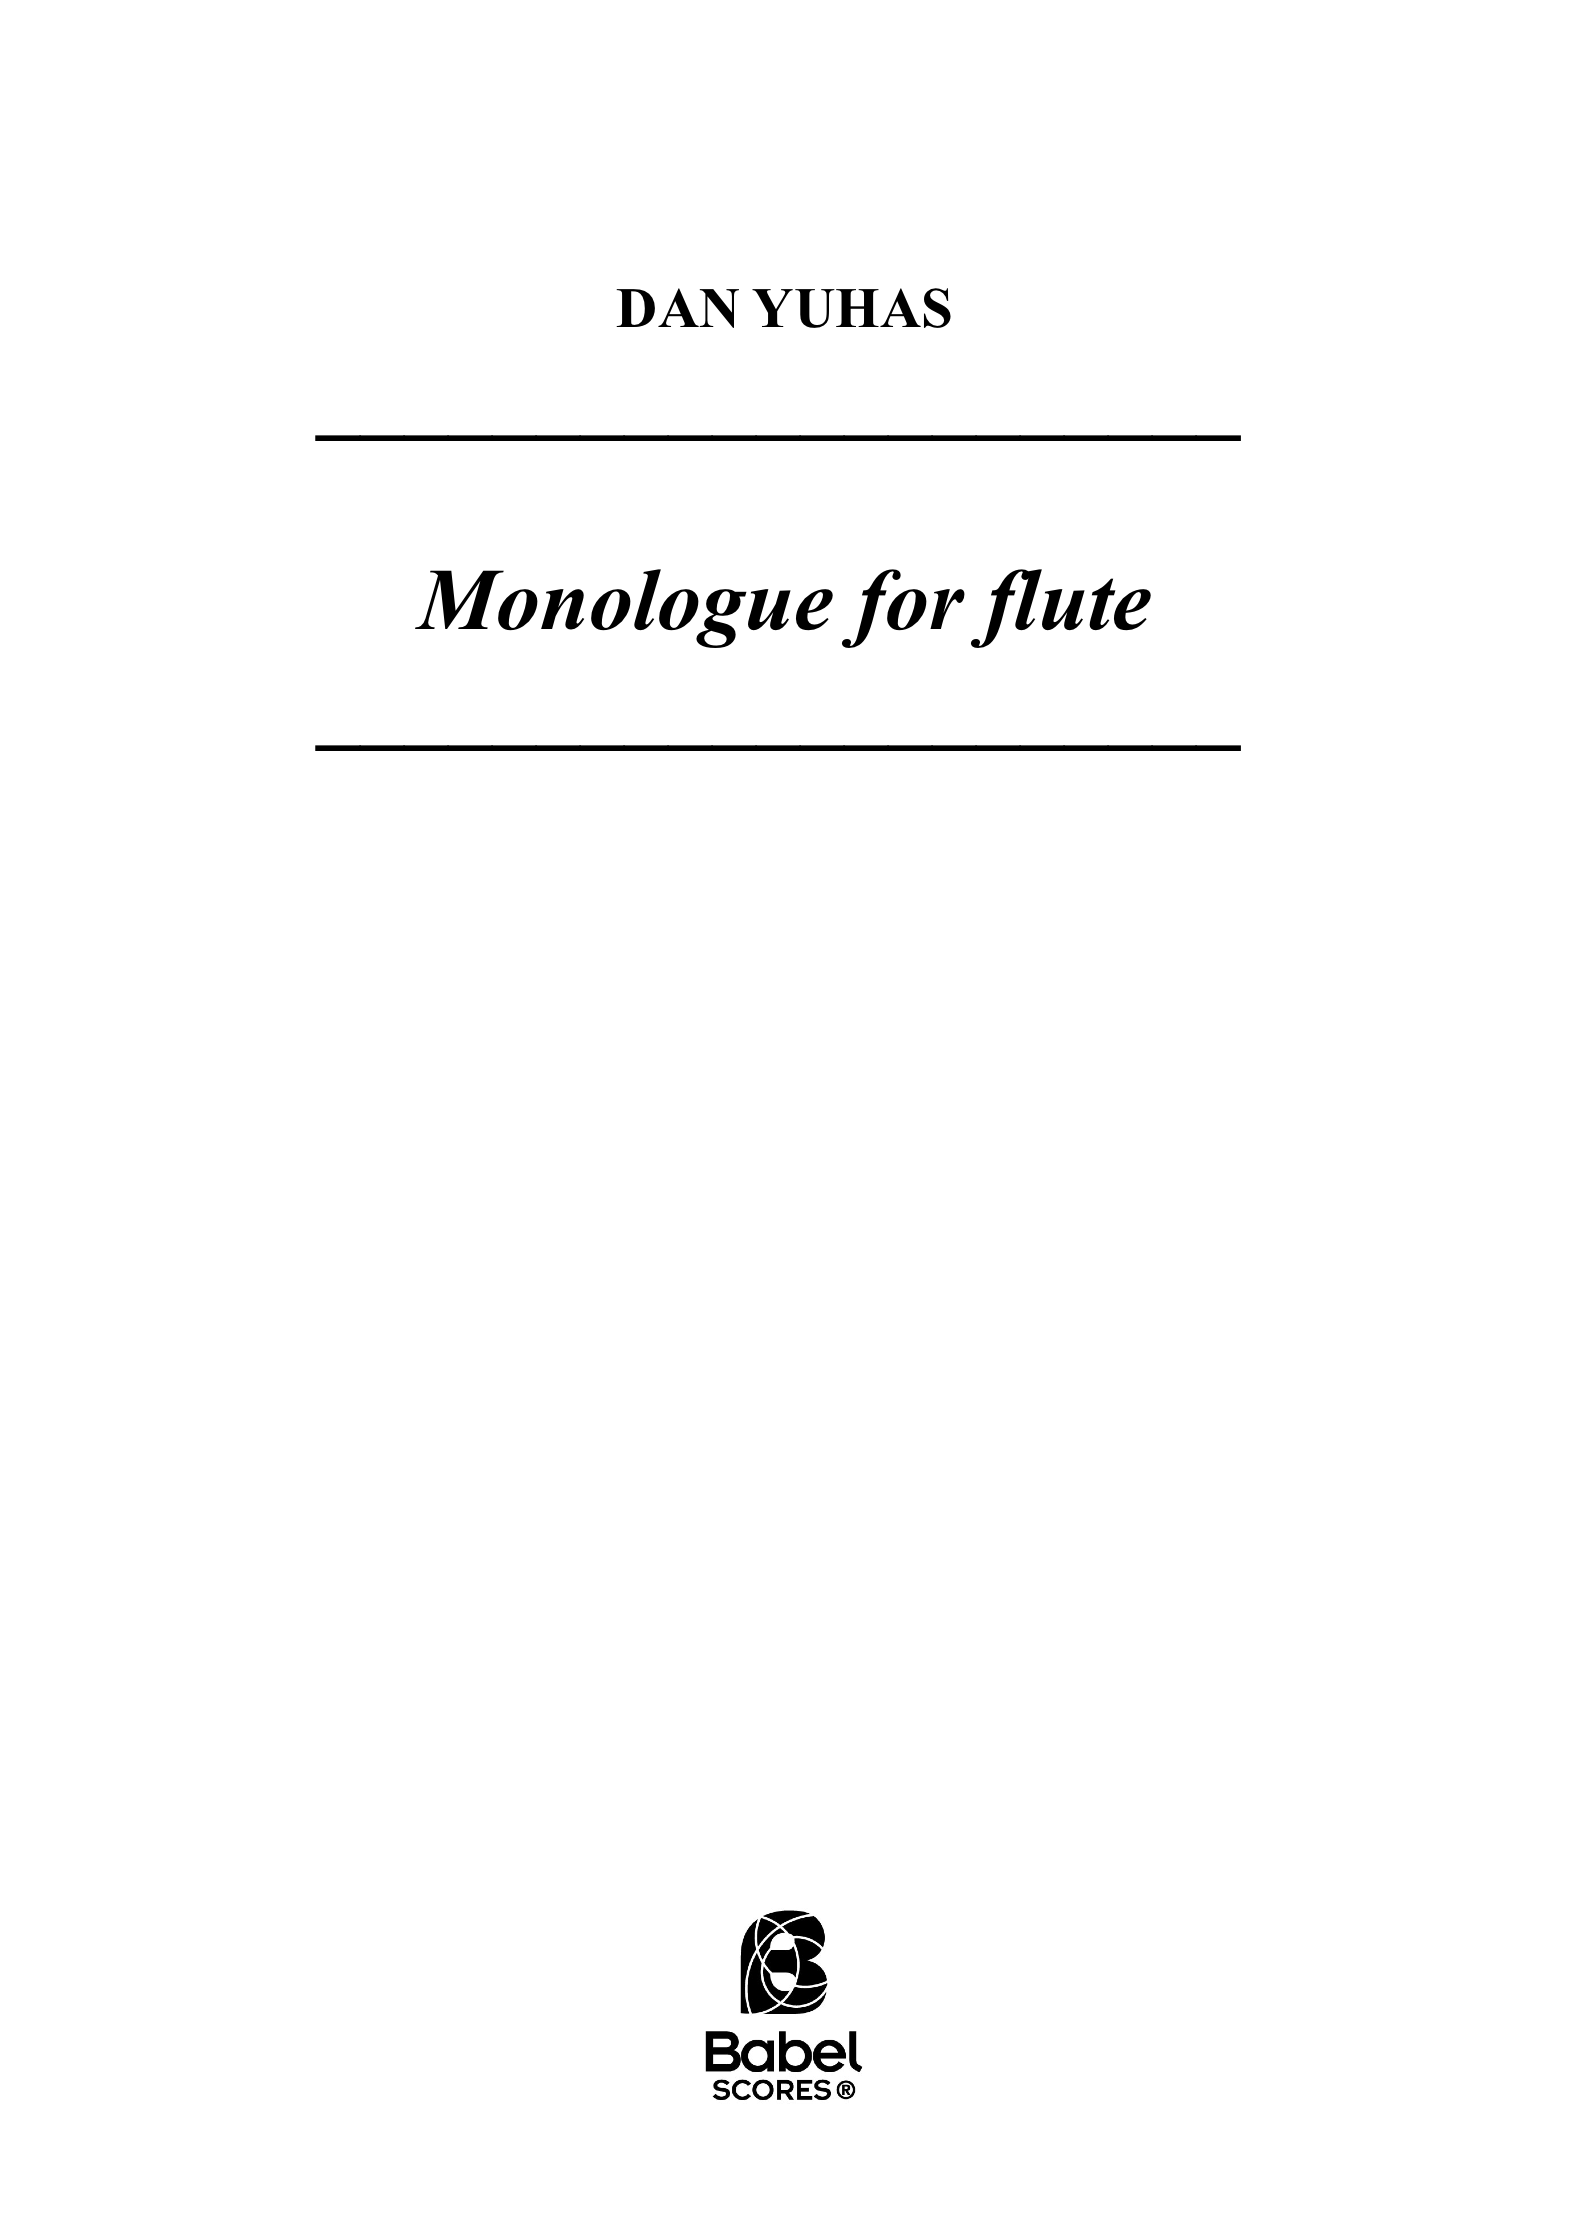 Monologue for flute A4 z